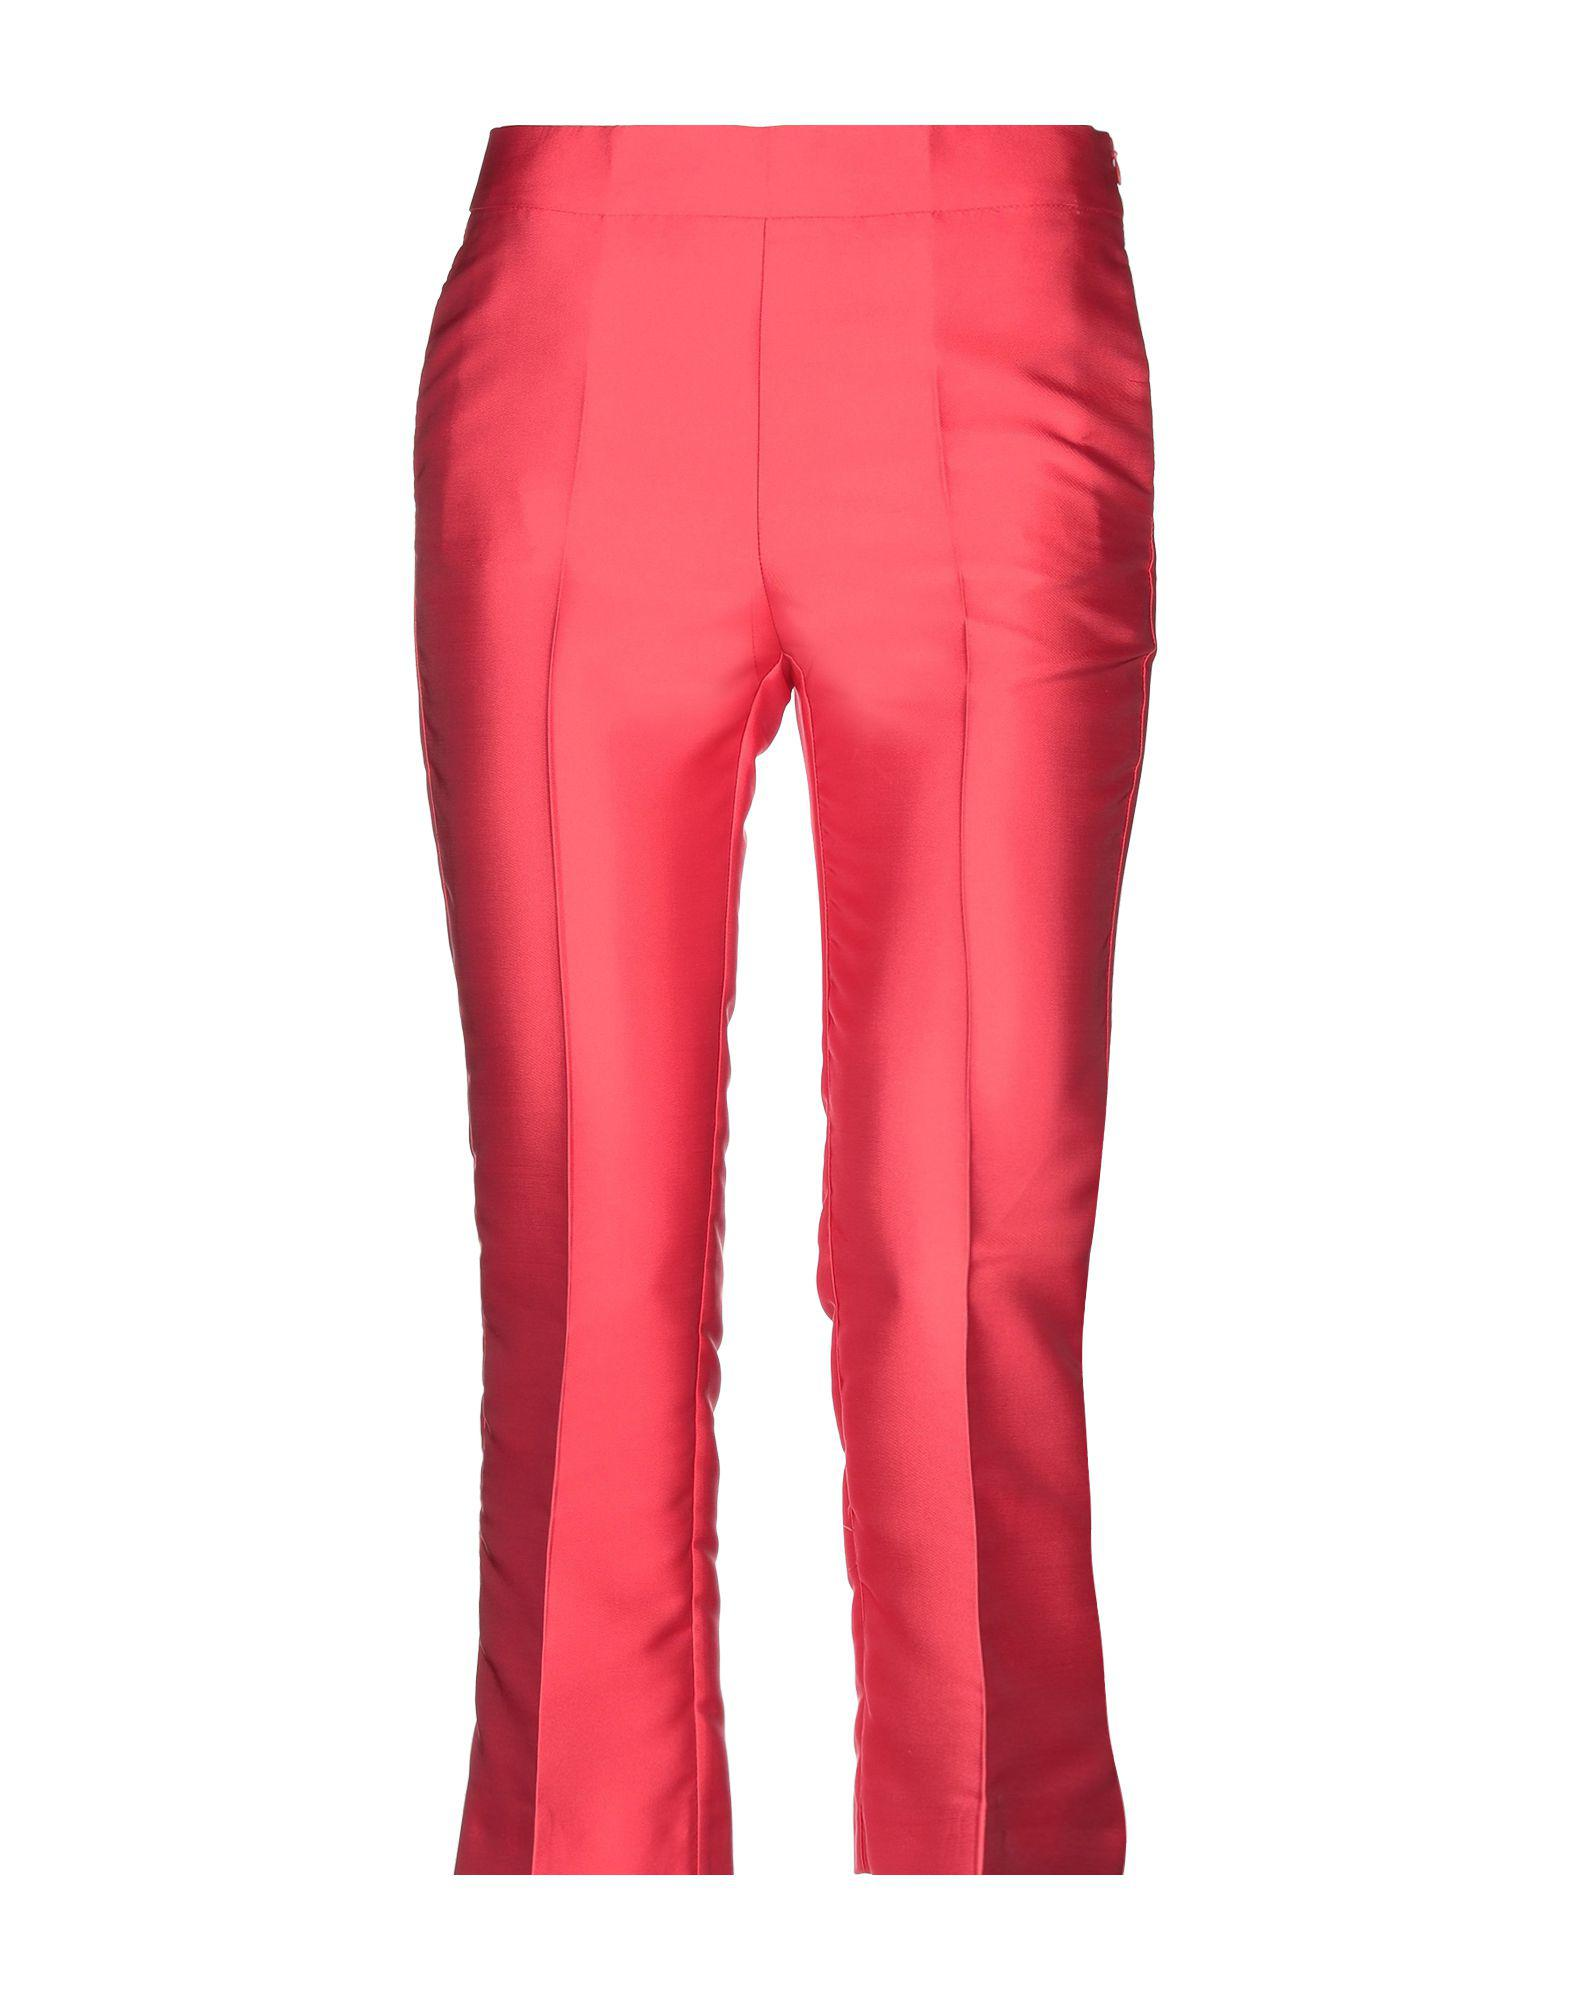 a47325a24d6 space-style-concept-Red-34-length-Short.jpeg